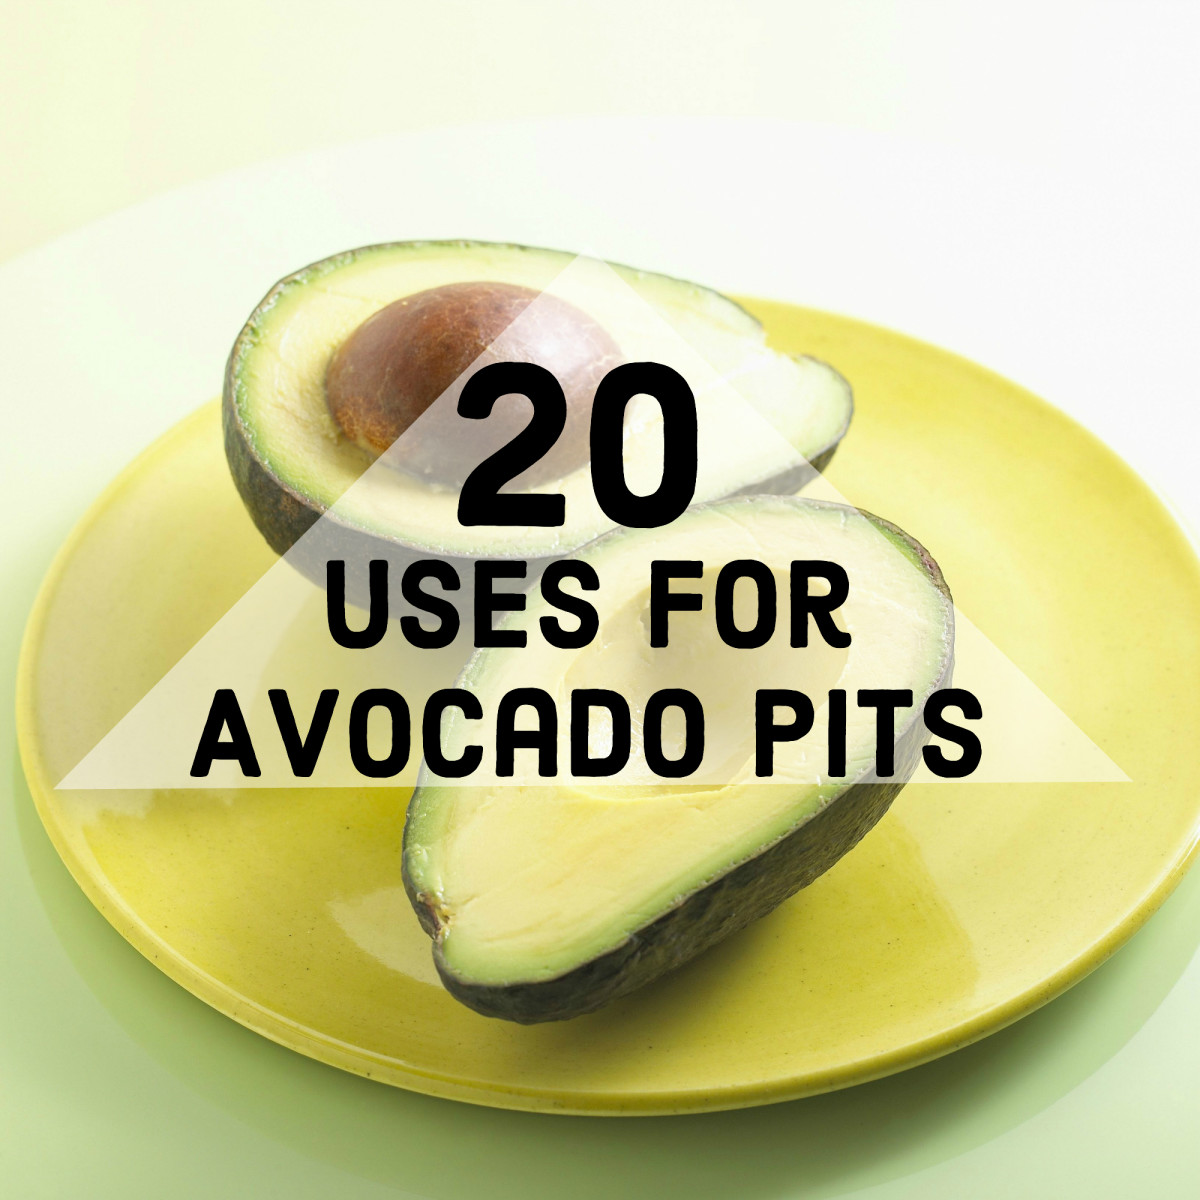 Don't just toss that avocado pit! Discover some fun and thrifty ways you can use it.